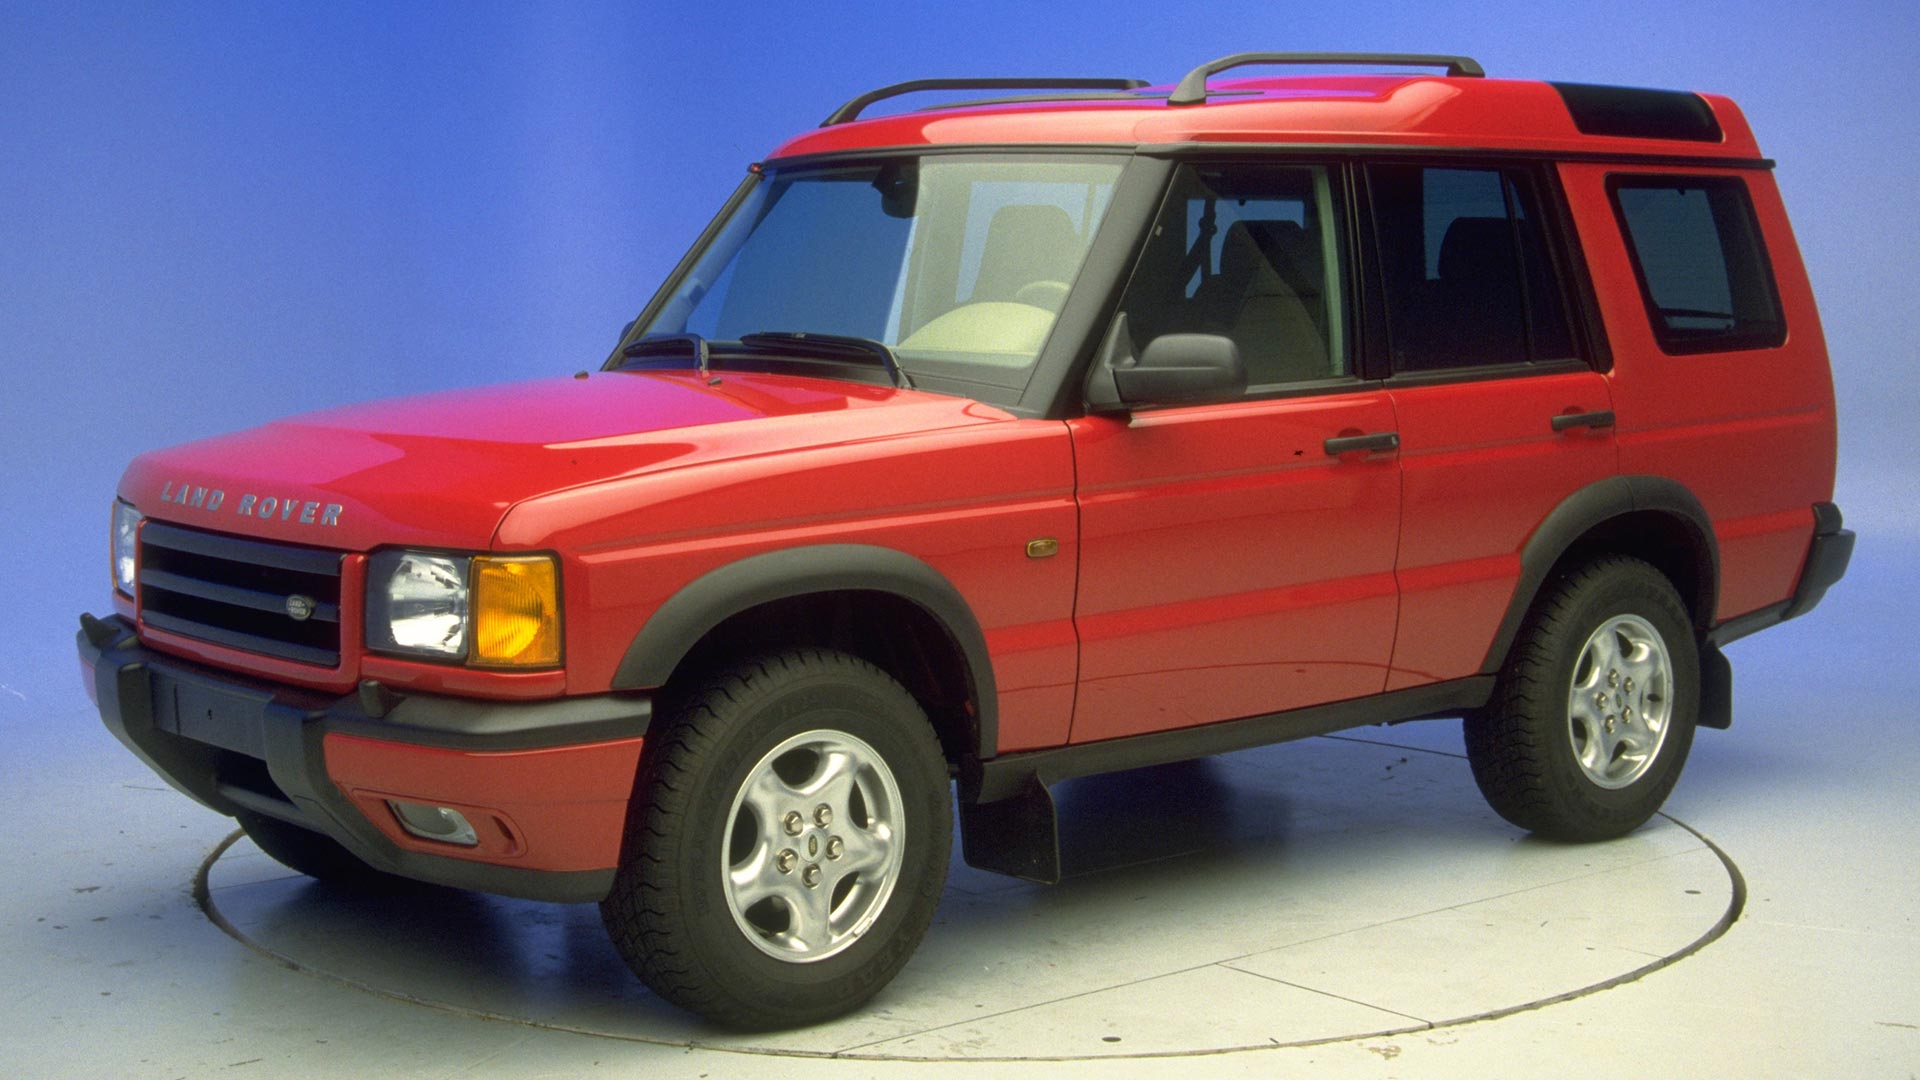 2000 Land Rover Discovery Series II 4-door SUV